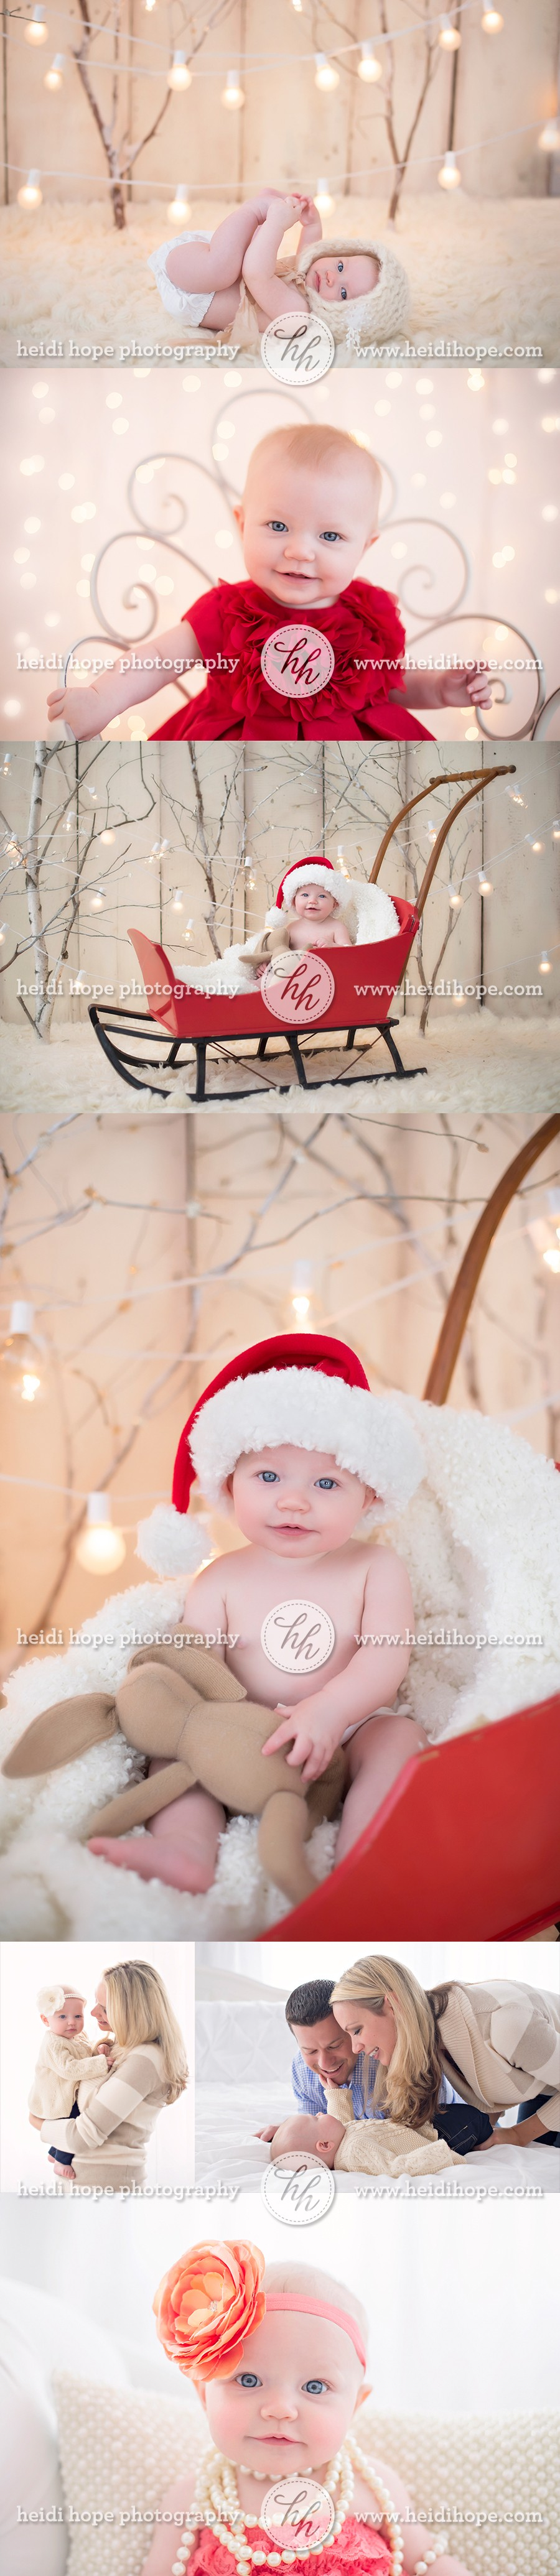 6 month old christmas family portrait session with lights and snow sled